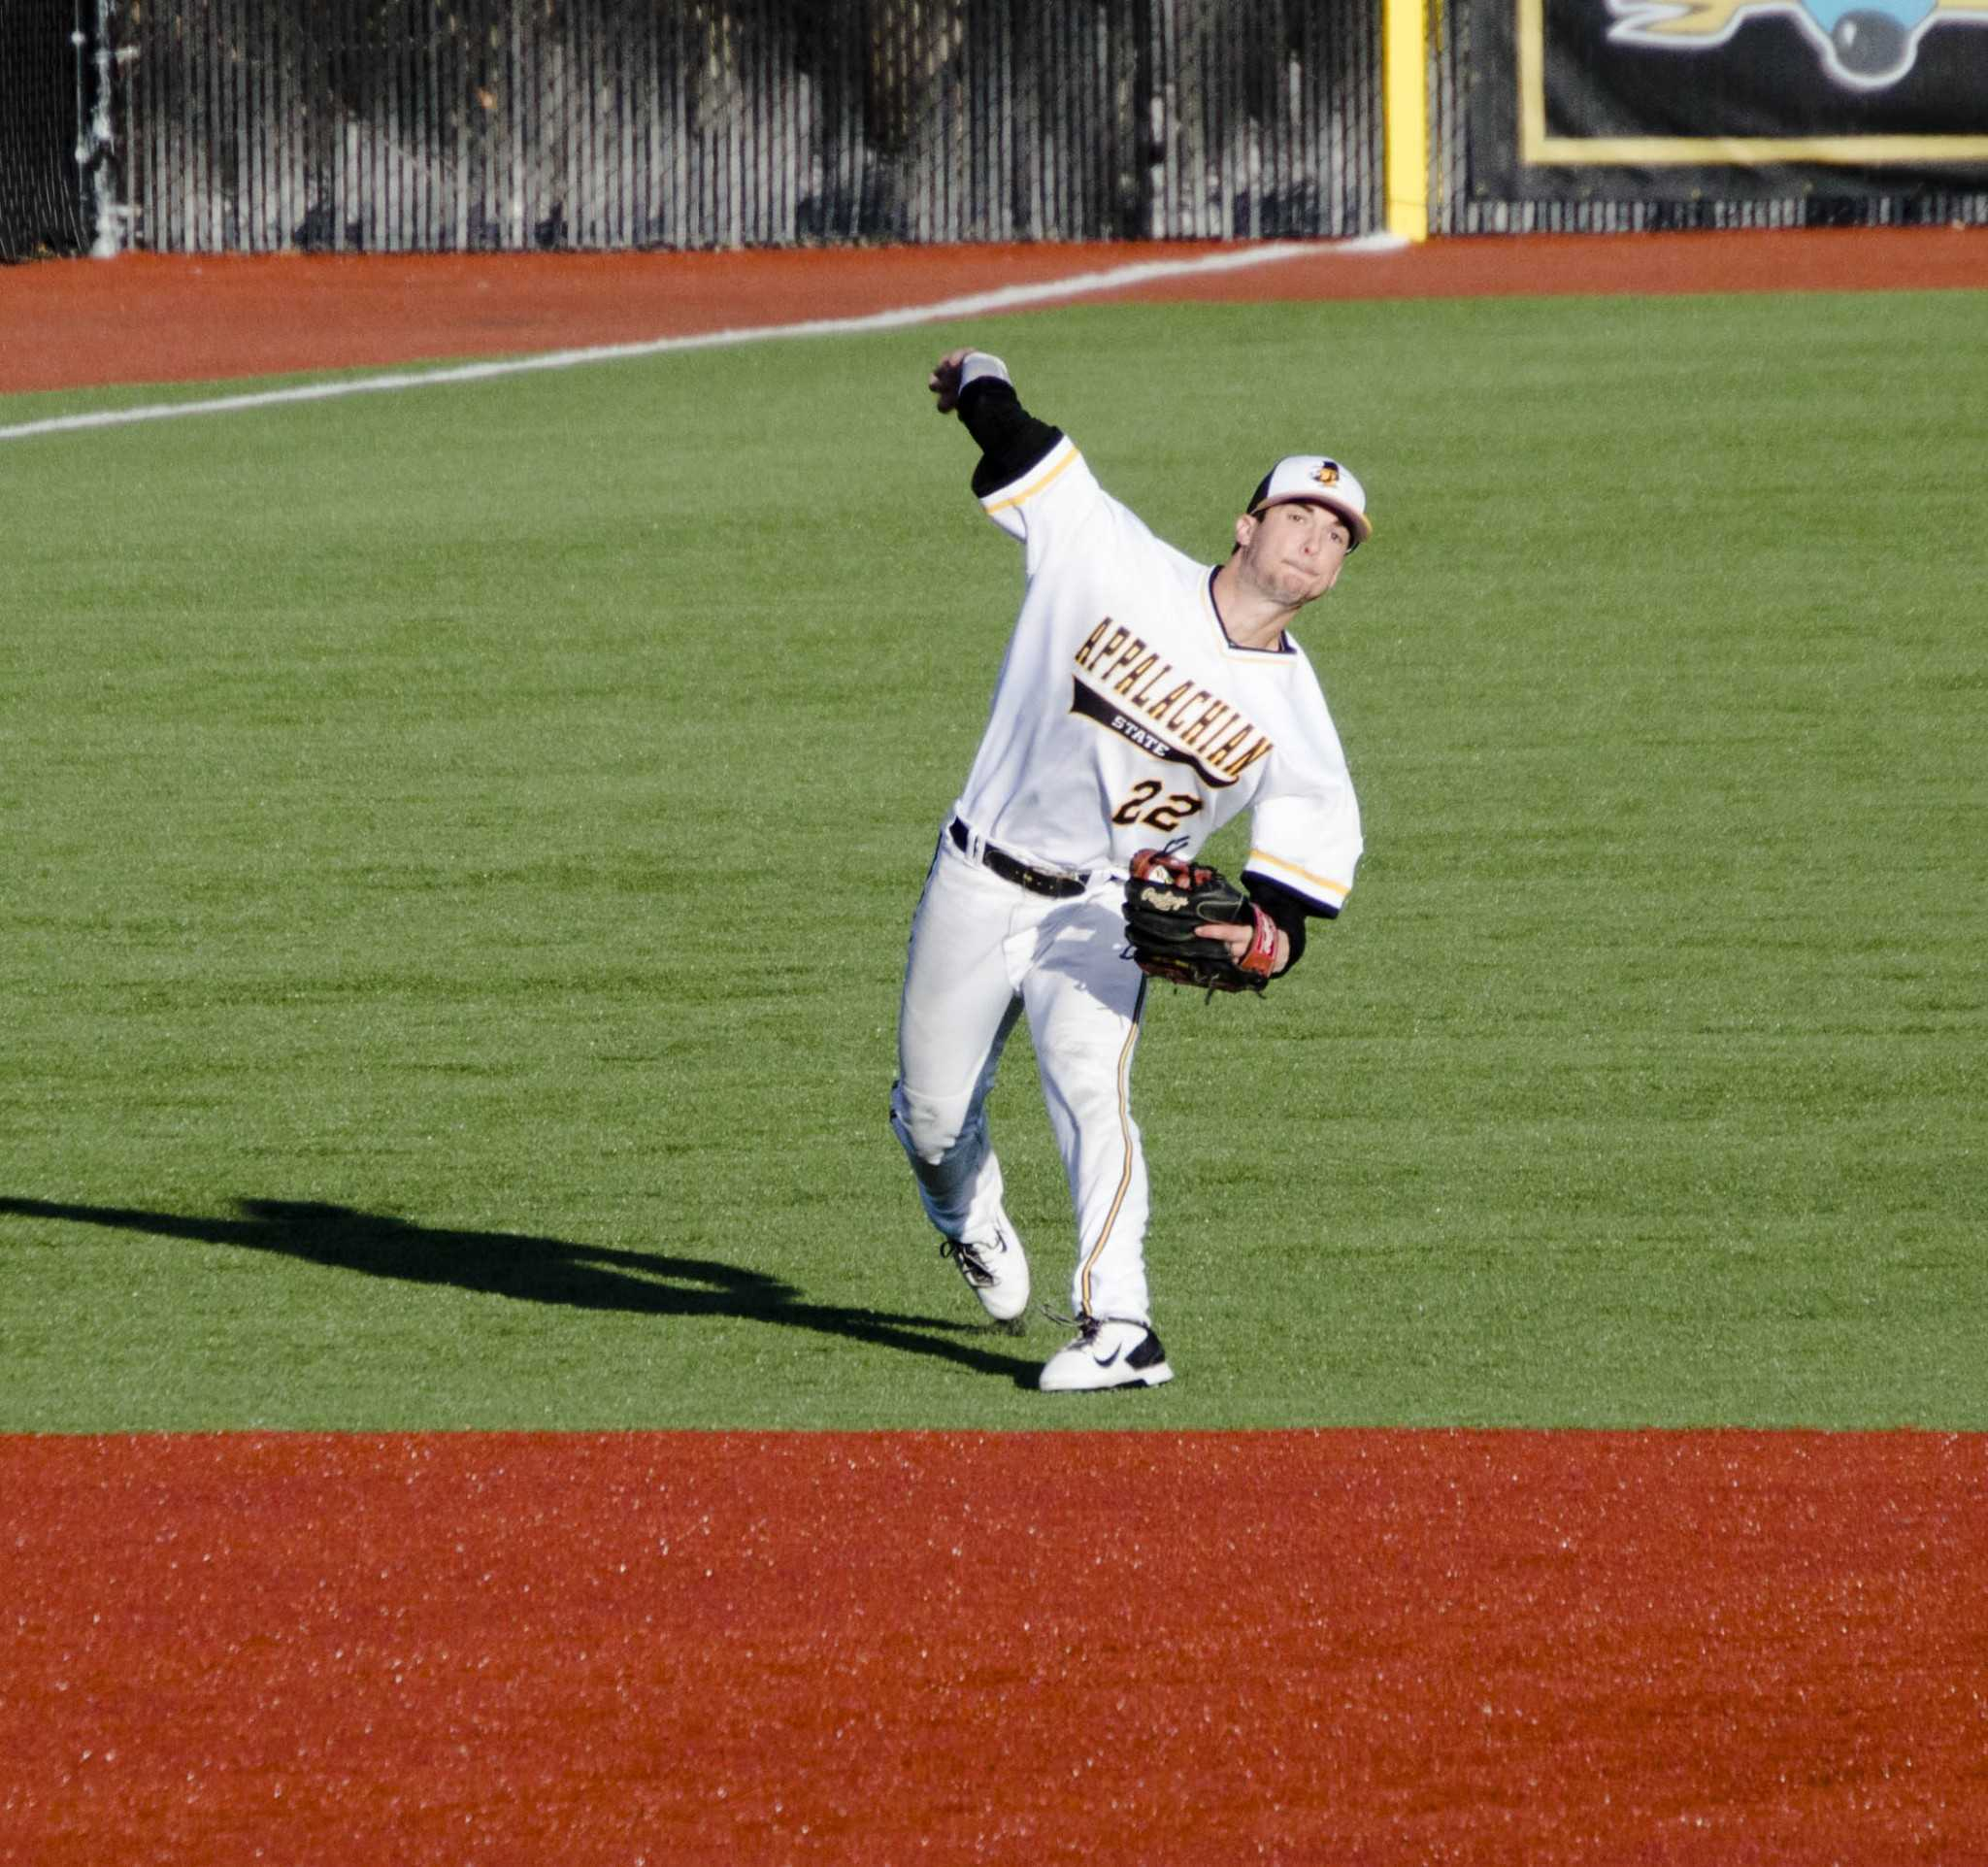 Senior+middle+infielder+Michael+Pierson+makes+a+play+in+the+hole+against+Wake+Forest+March+25.+Pierson+went+1-3+with+an+RBI+against+High+Point+last+night+in+the+8-3+App+State+win.